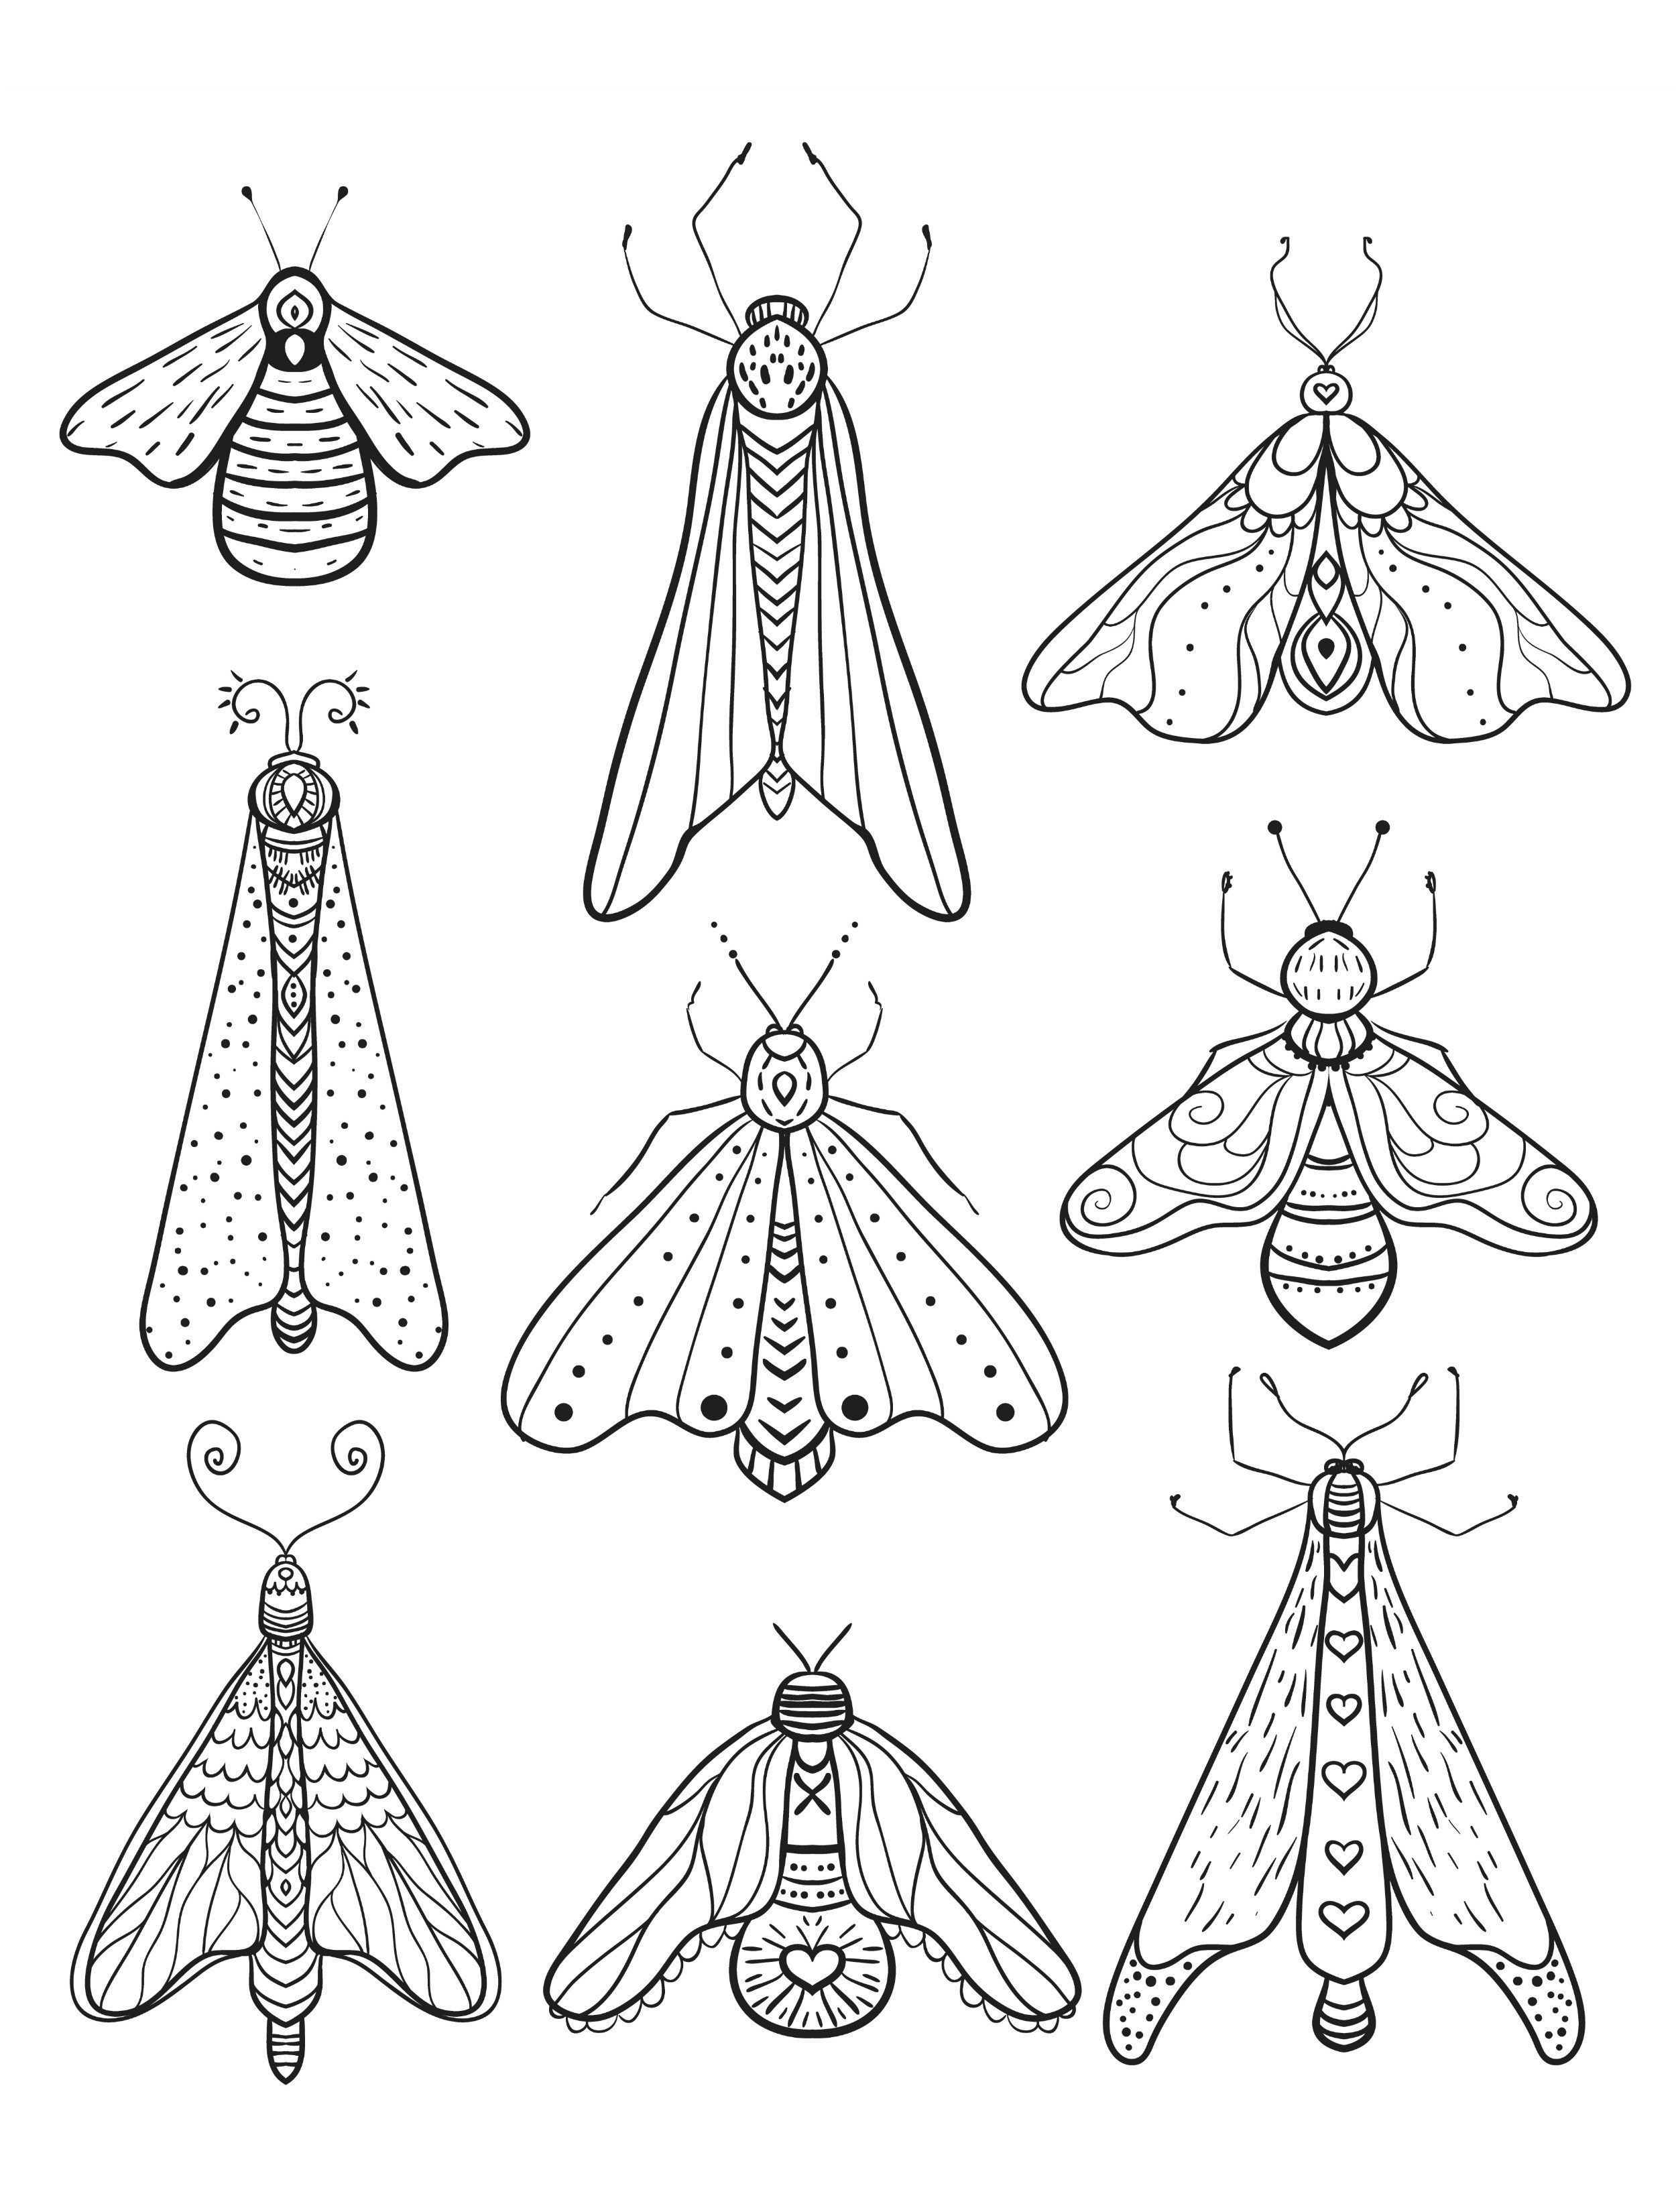 insect free downloadable adult coloring pages pic Source: http ...